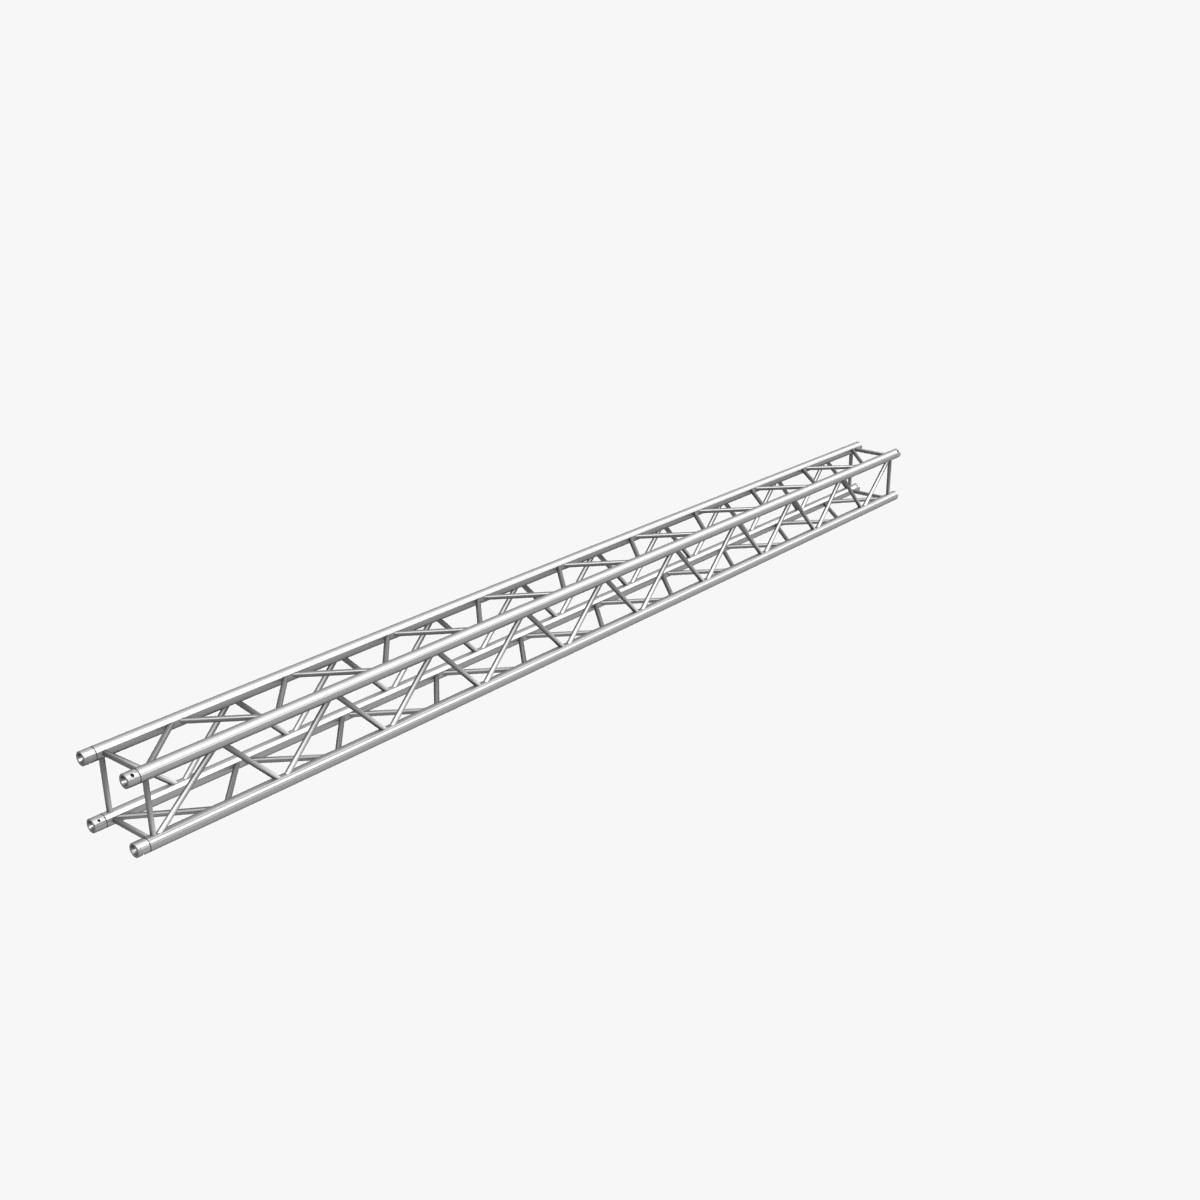 square truss standard (collection 24 modular) 3d model 3ds max dxf fbx c4d dae  texture obj 216340